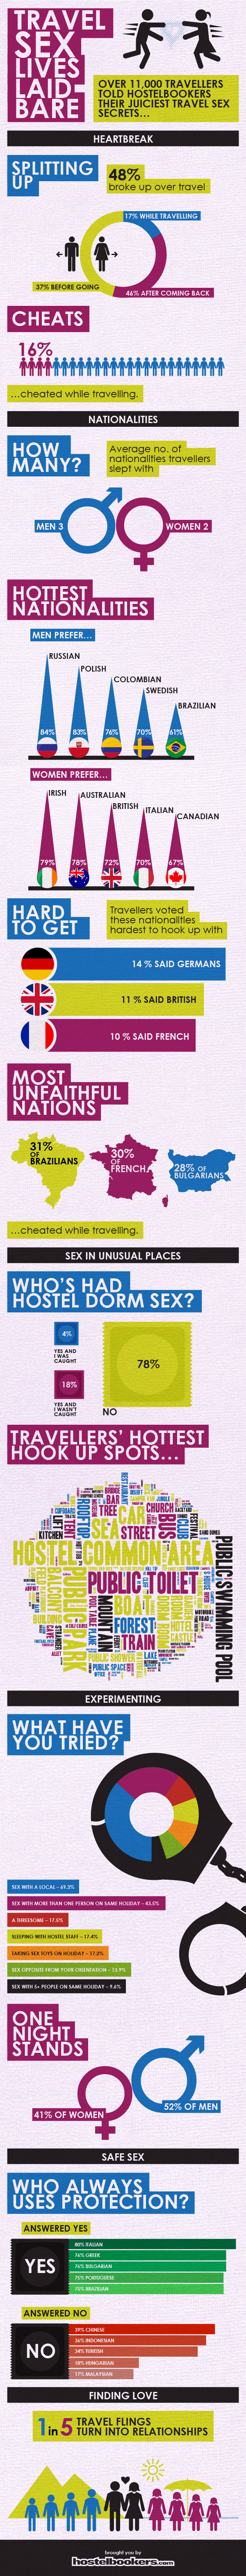 hostelbookerssexsurvey